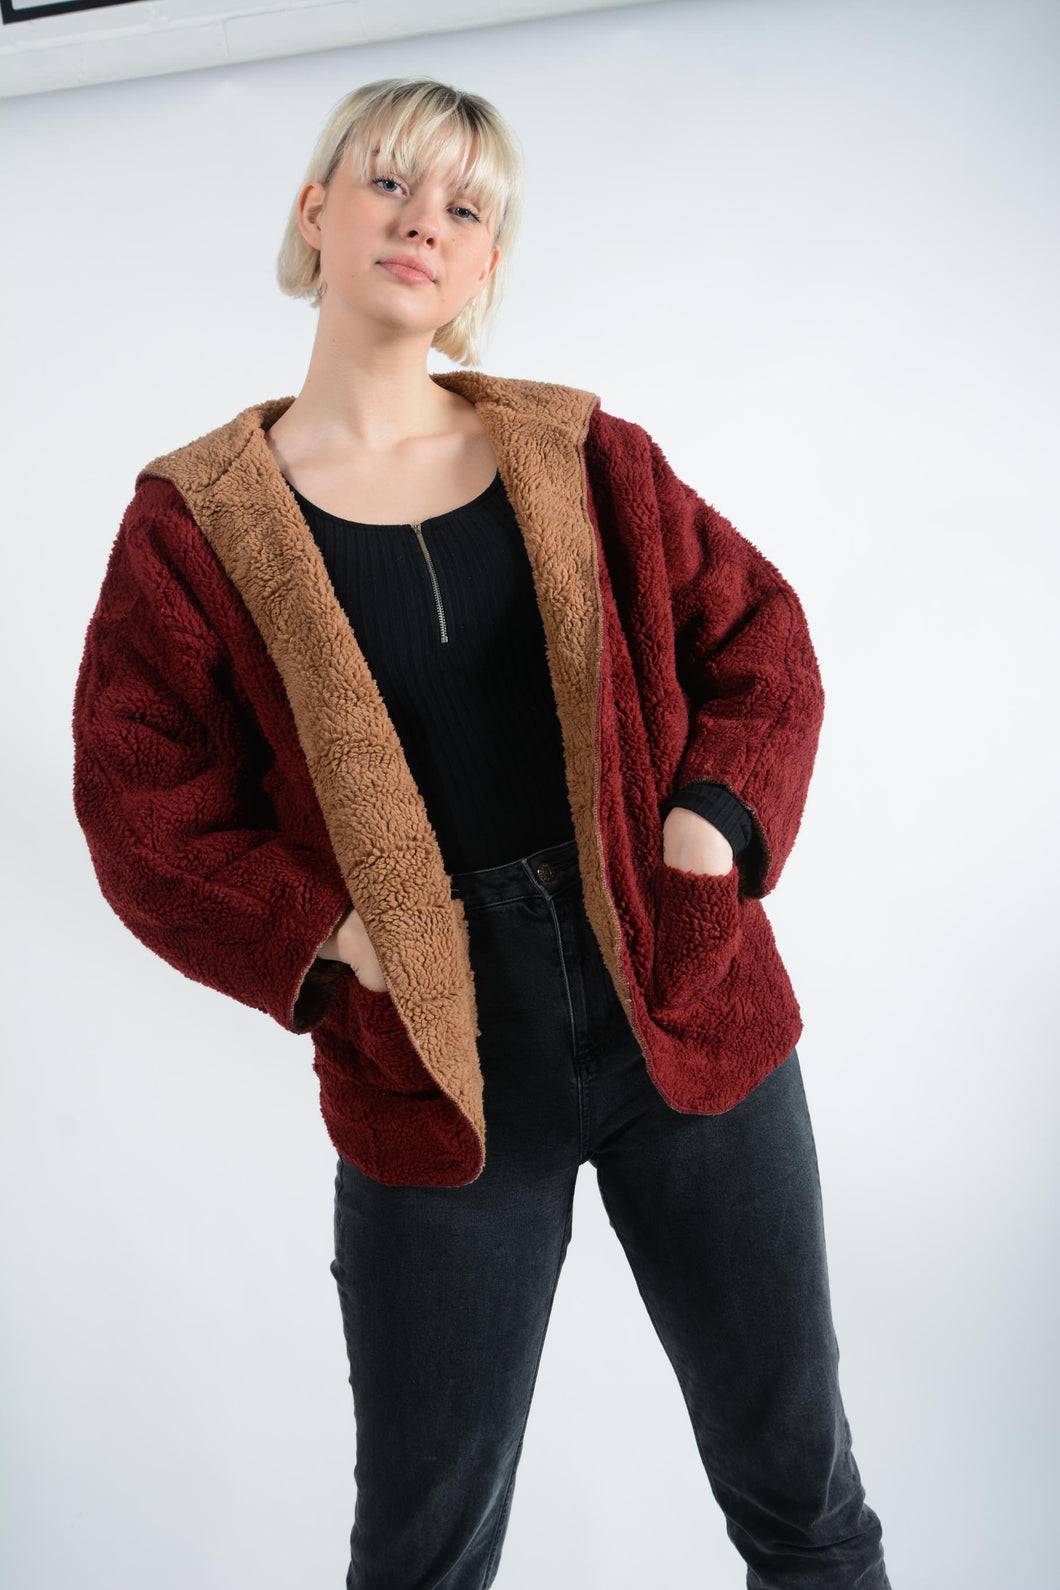 Vintage Fleece Jacket Teddy Material in Red - M